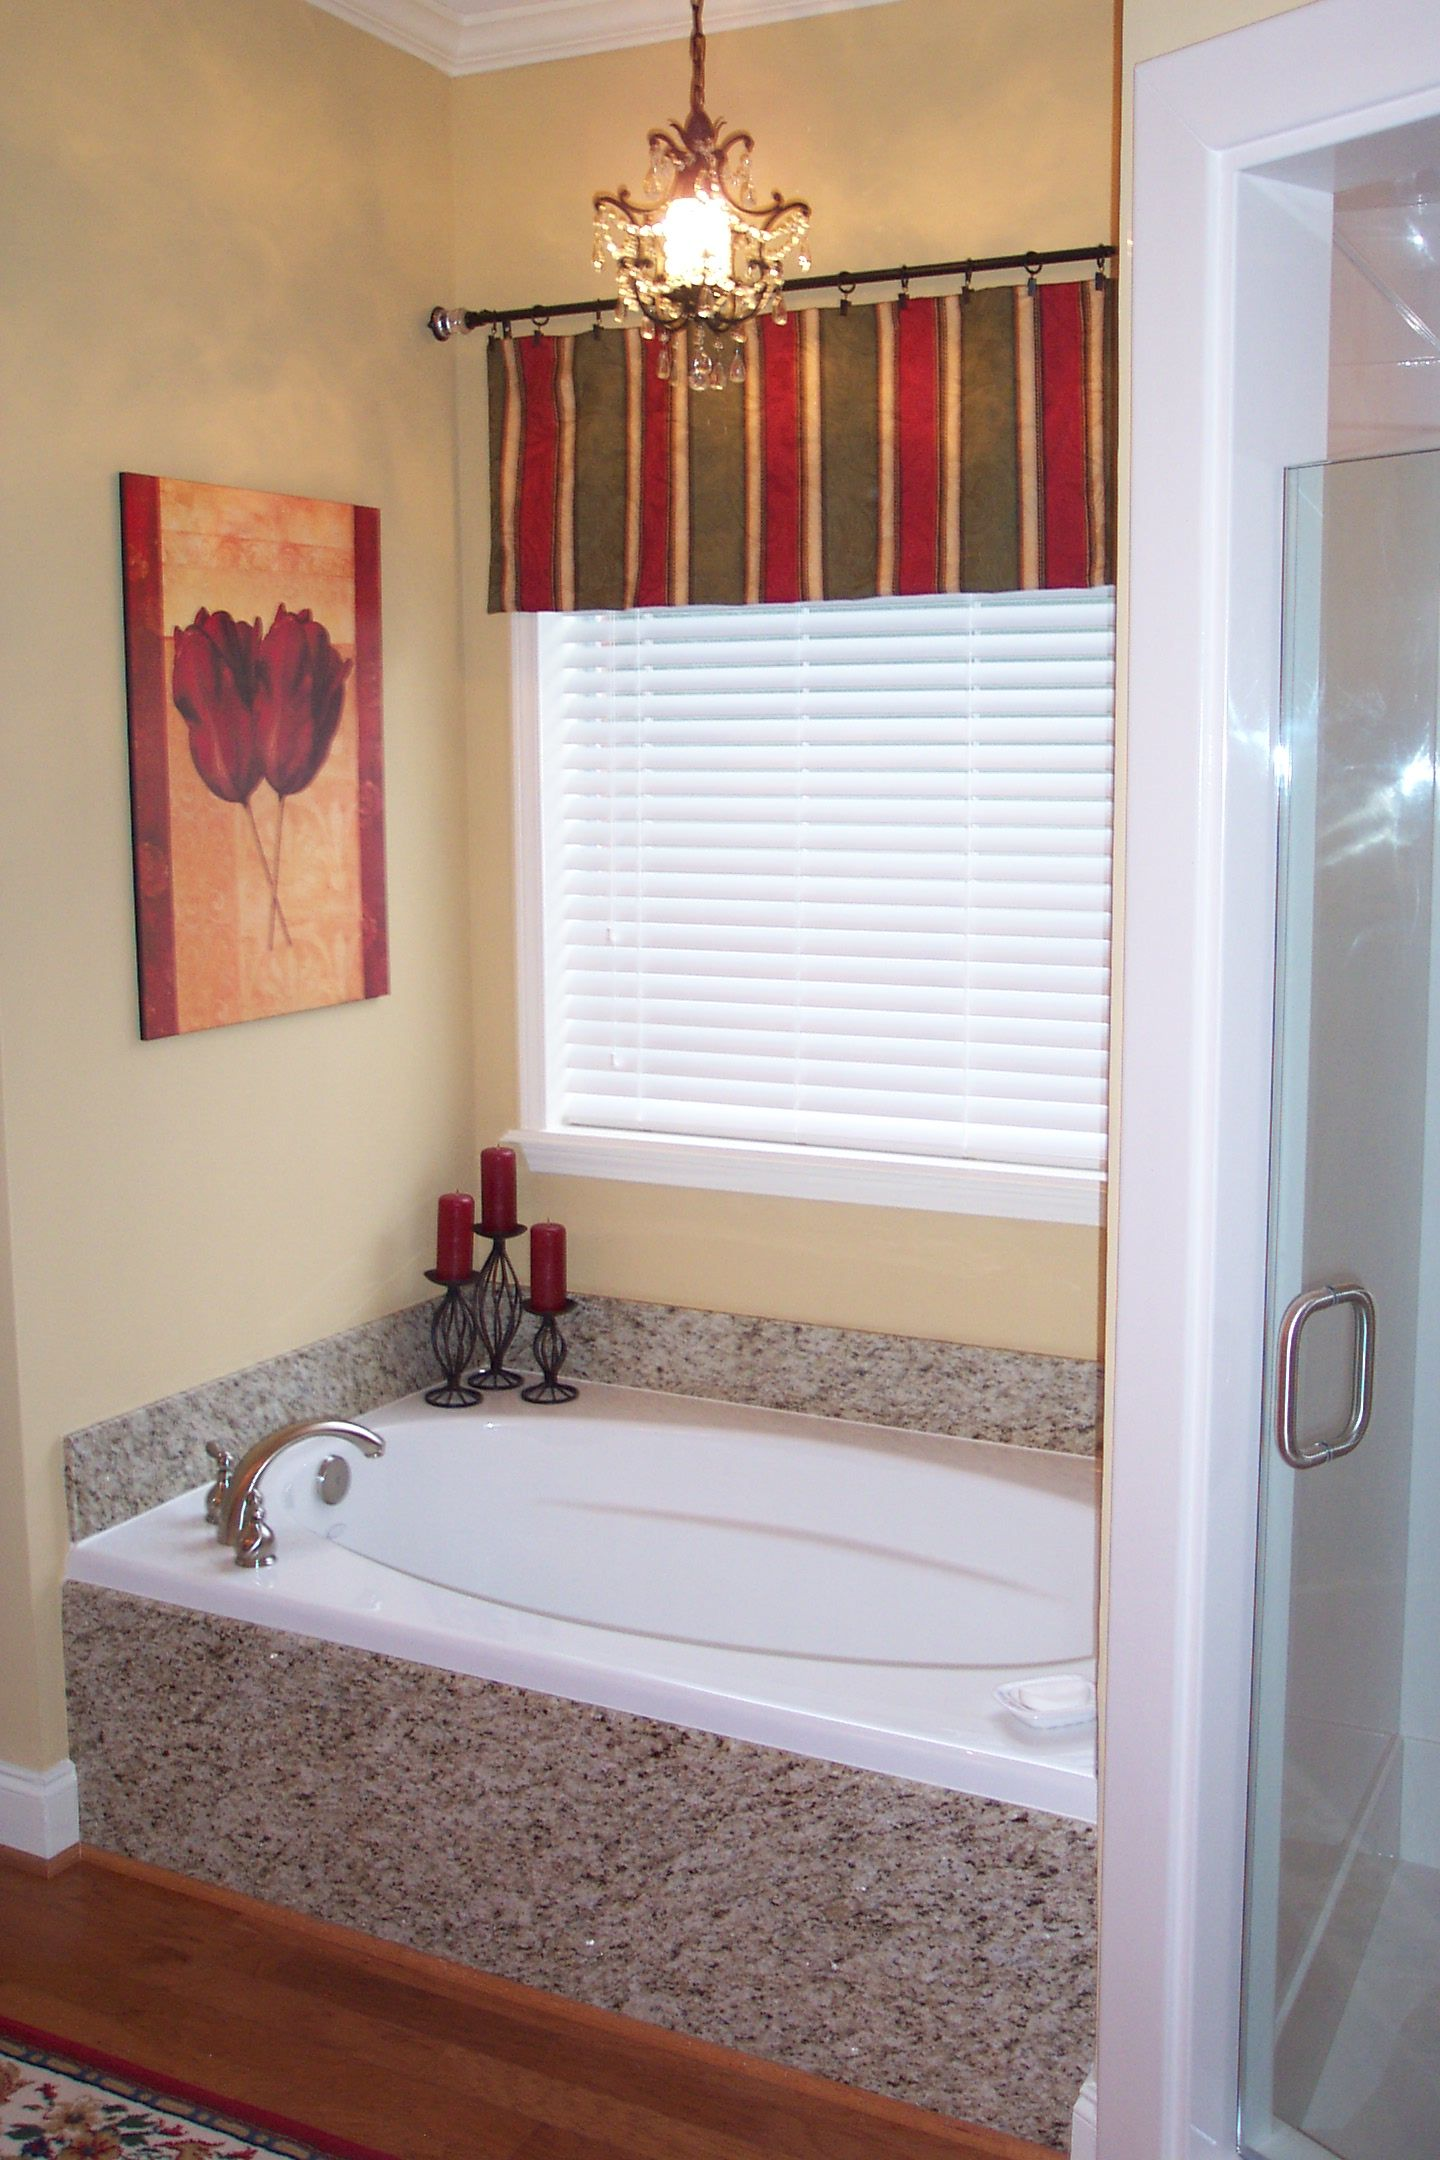 with skirt page matching g kwasnoski wood tub bath serene danziger master cherry interiors new whirlpool